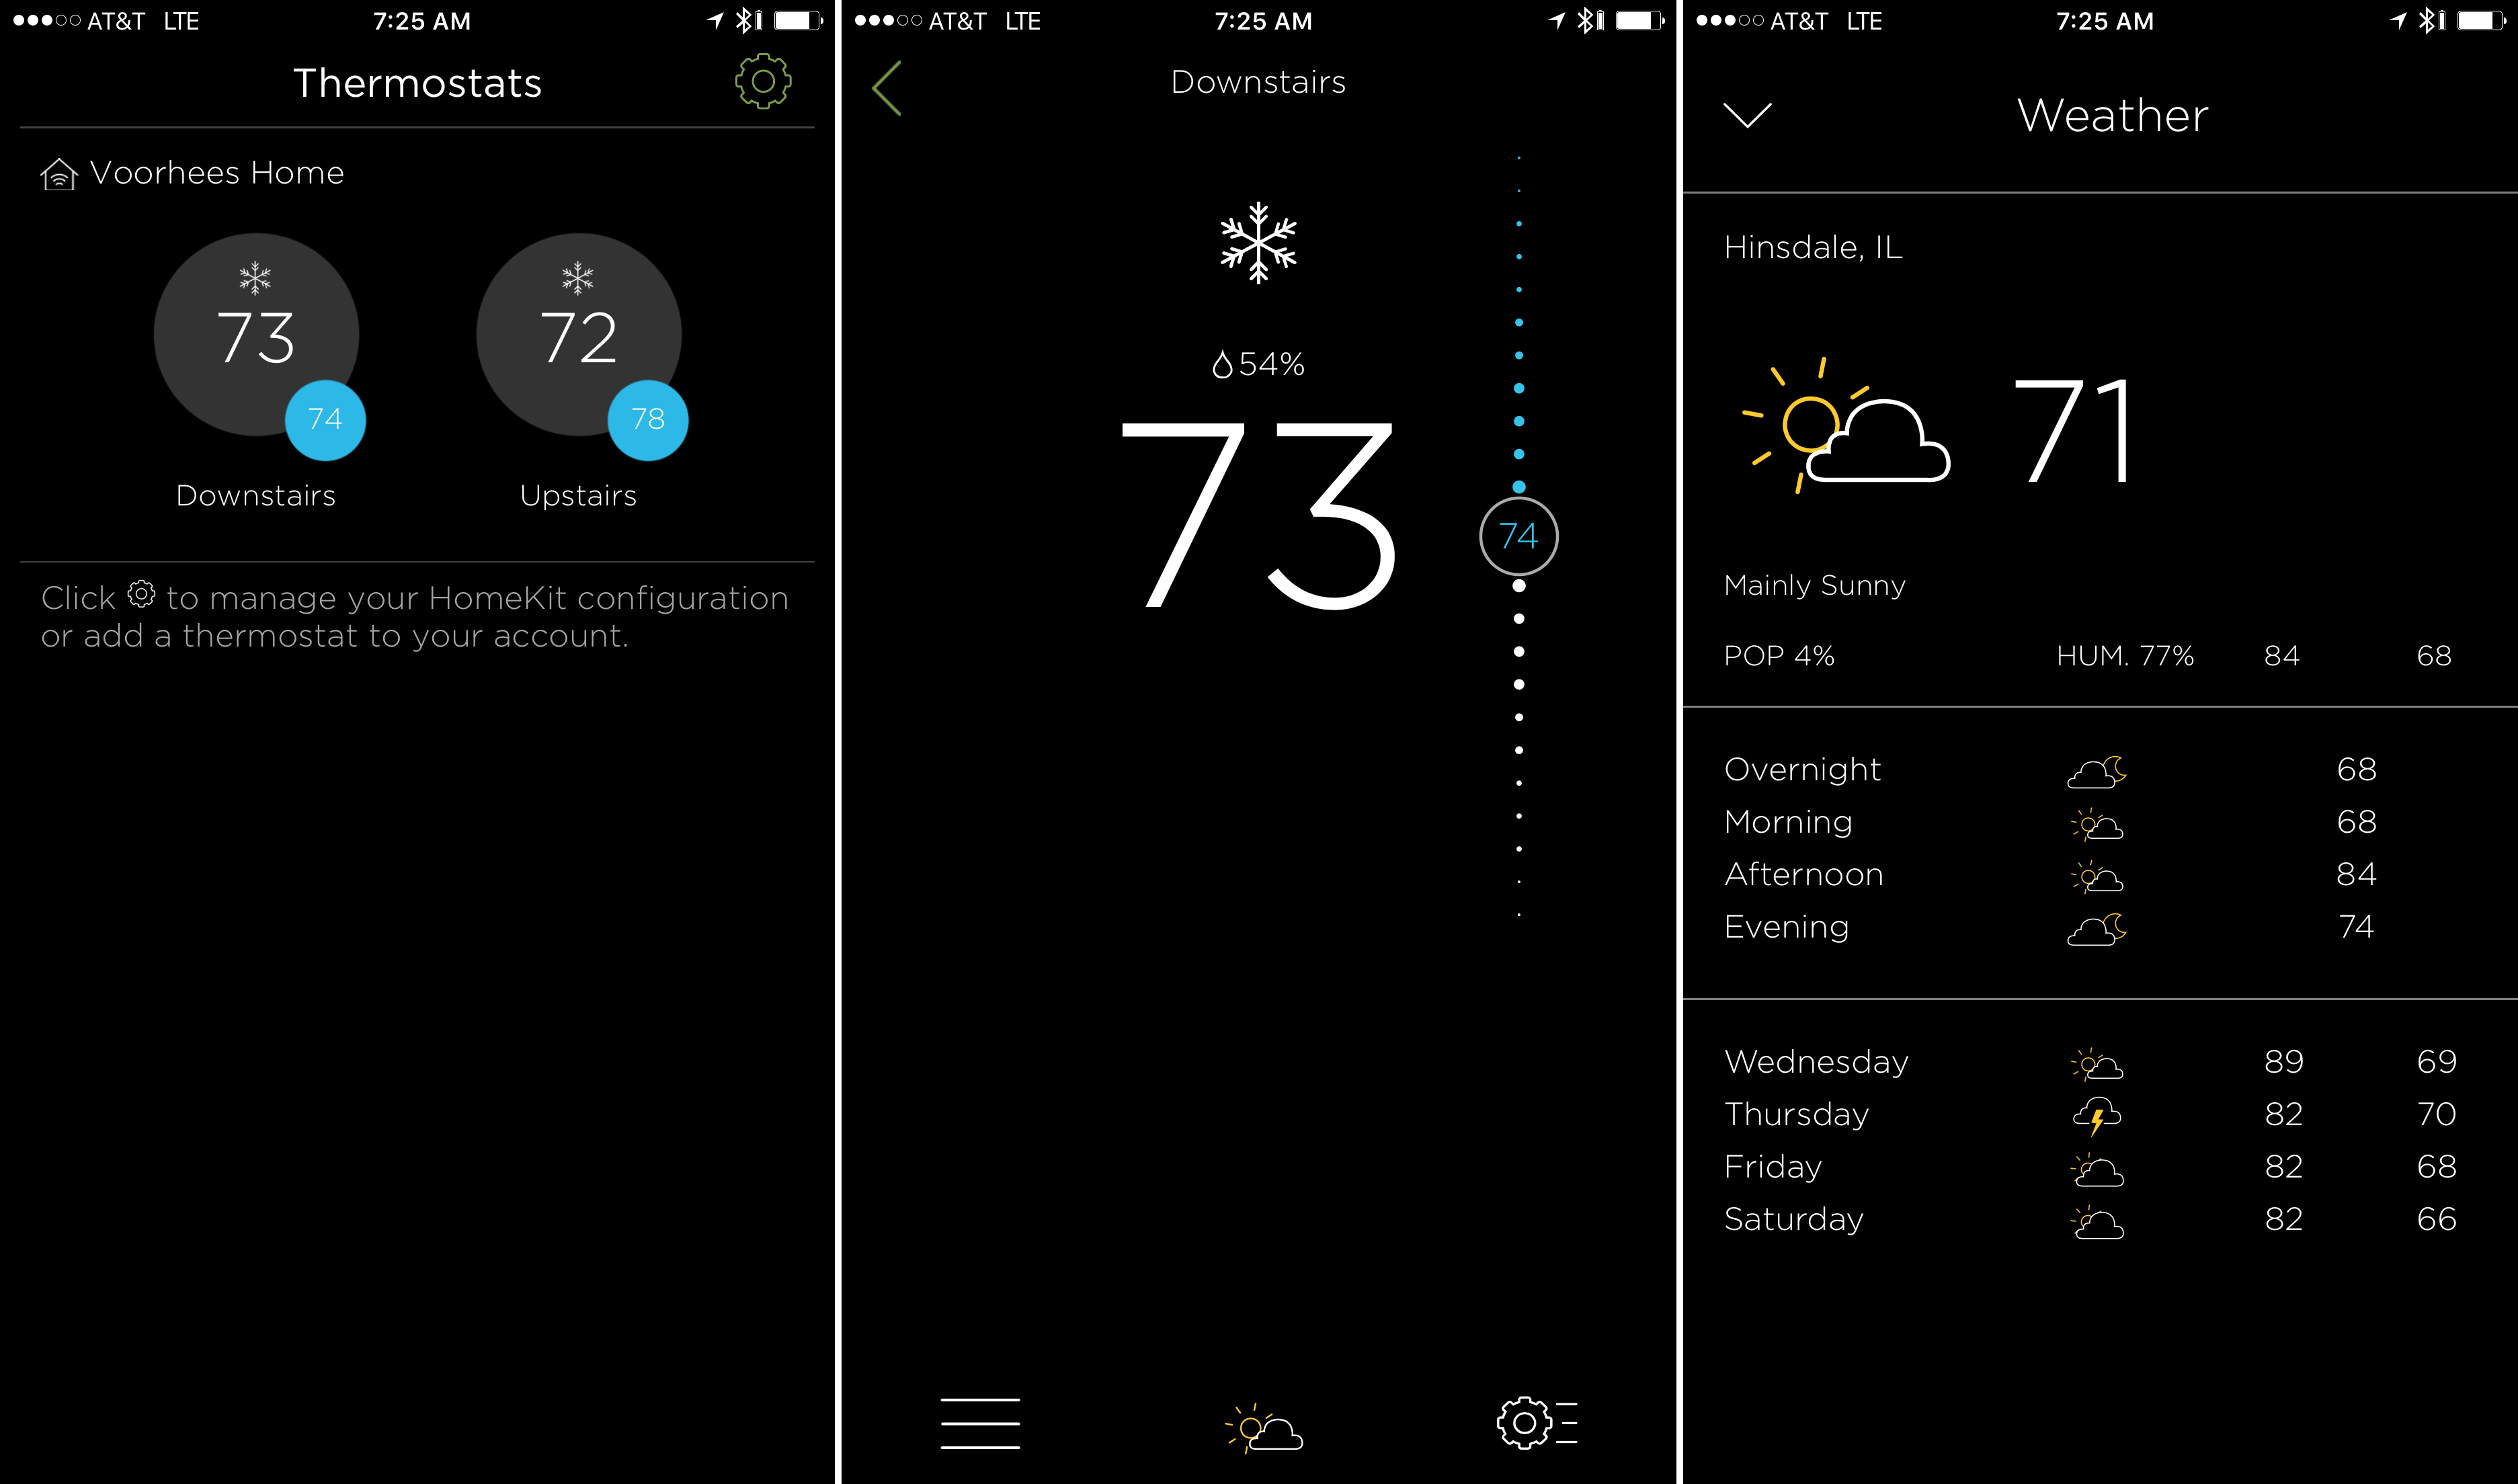 The start screen, temperature control, and weather views.